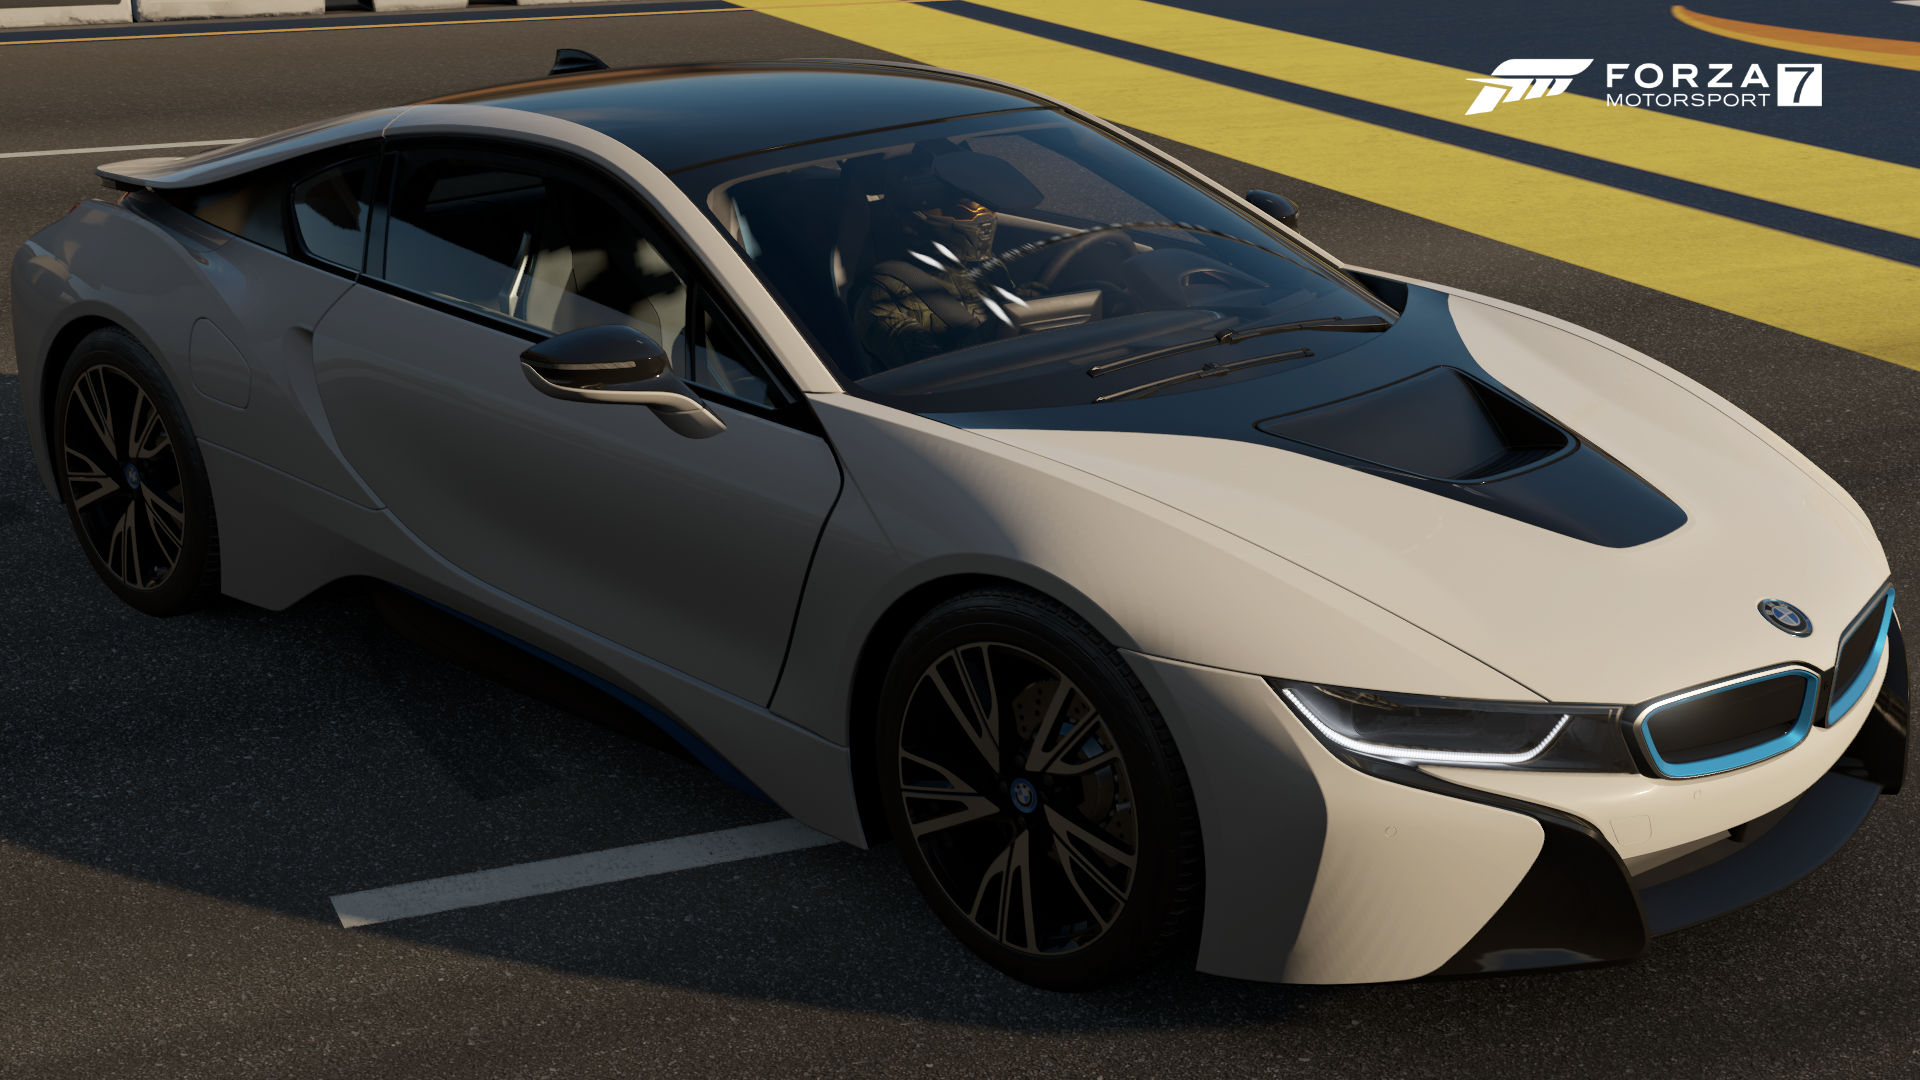 BMW i8 | Forza Motorsport Wiki | FANDOM powered by Wikia